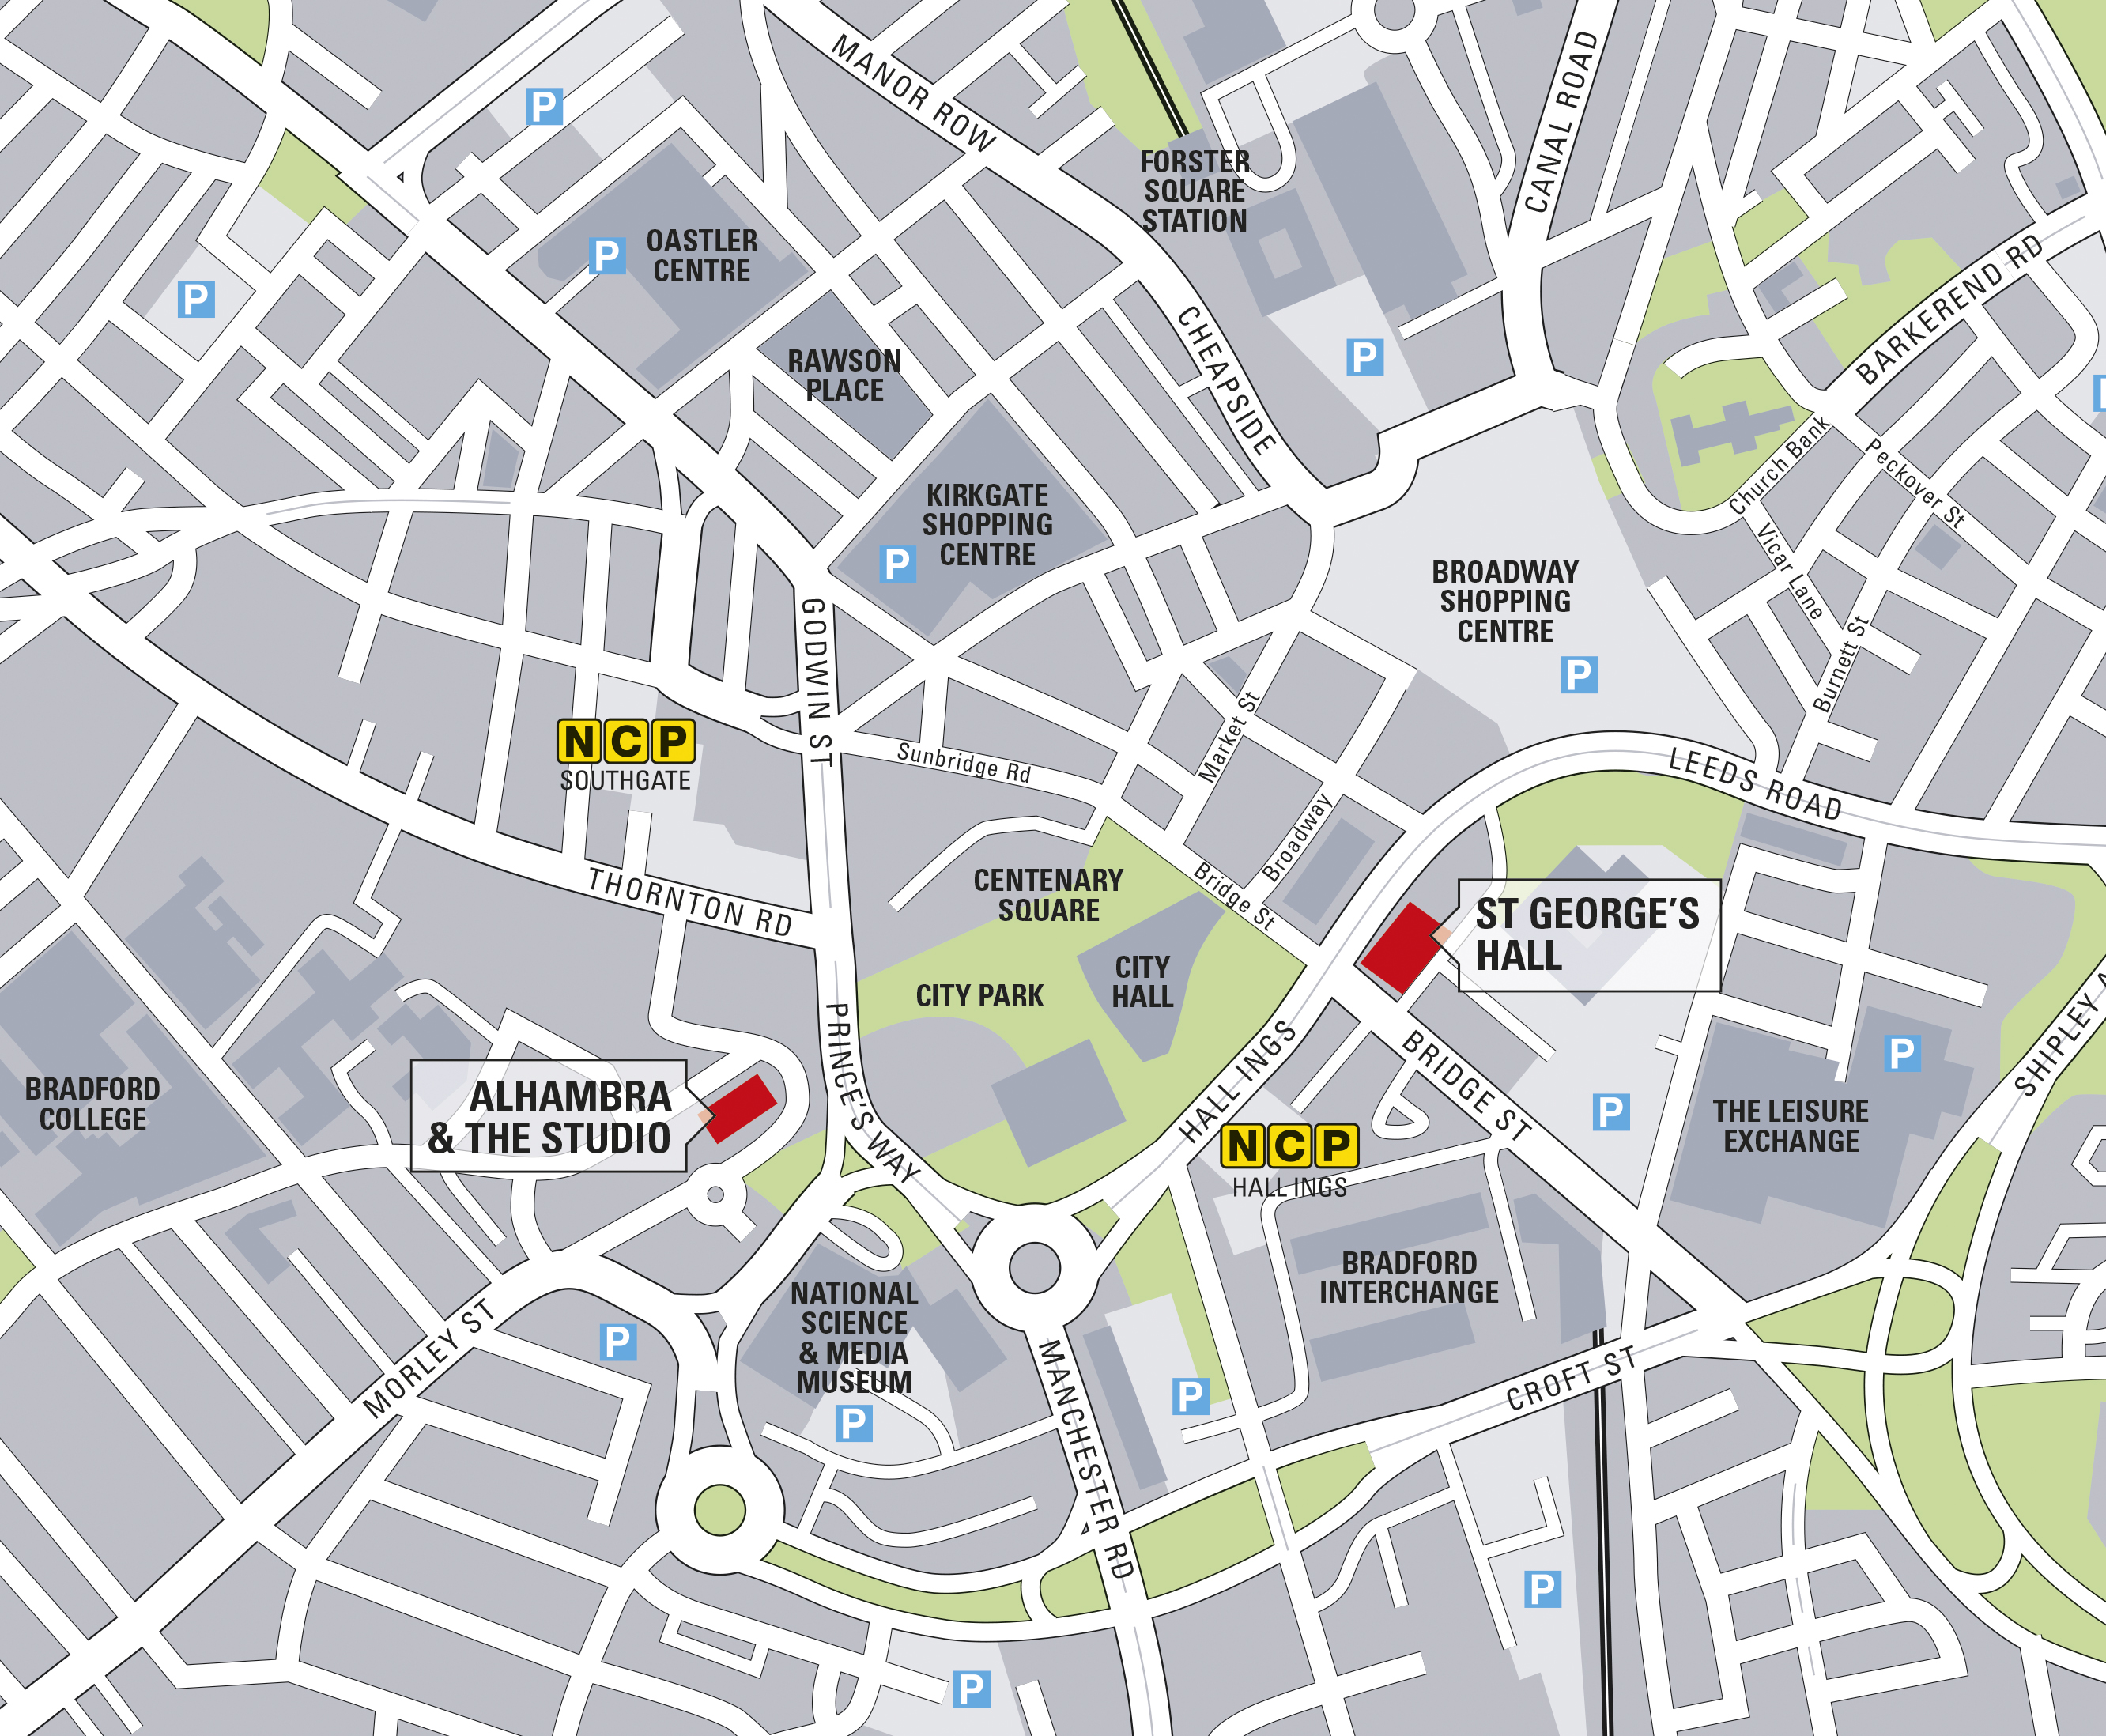 Map of Bradford City Centre highlighting the Alhambra Theatre